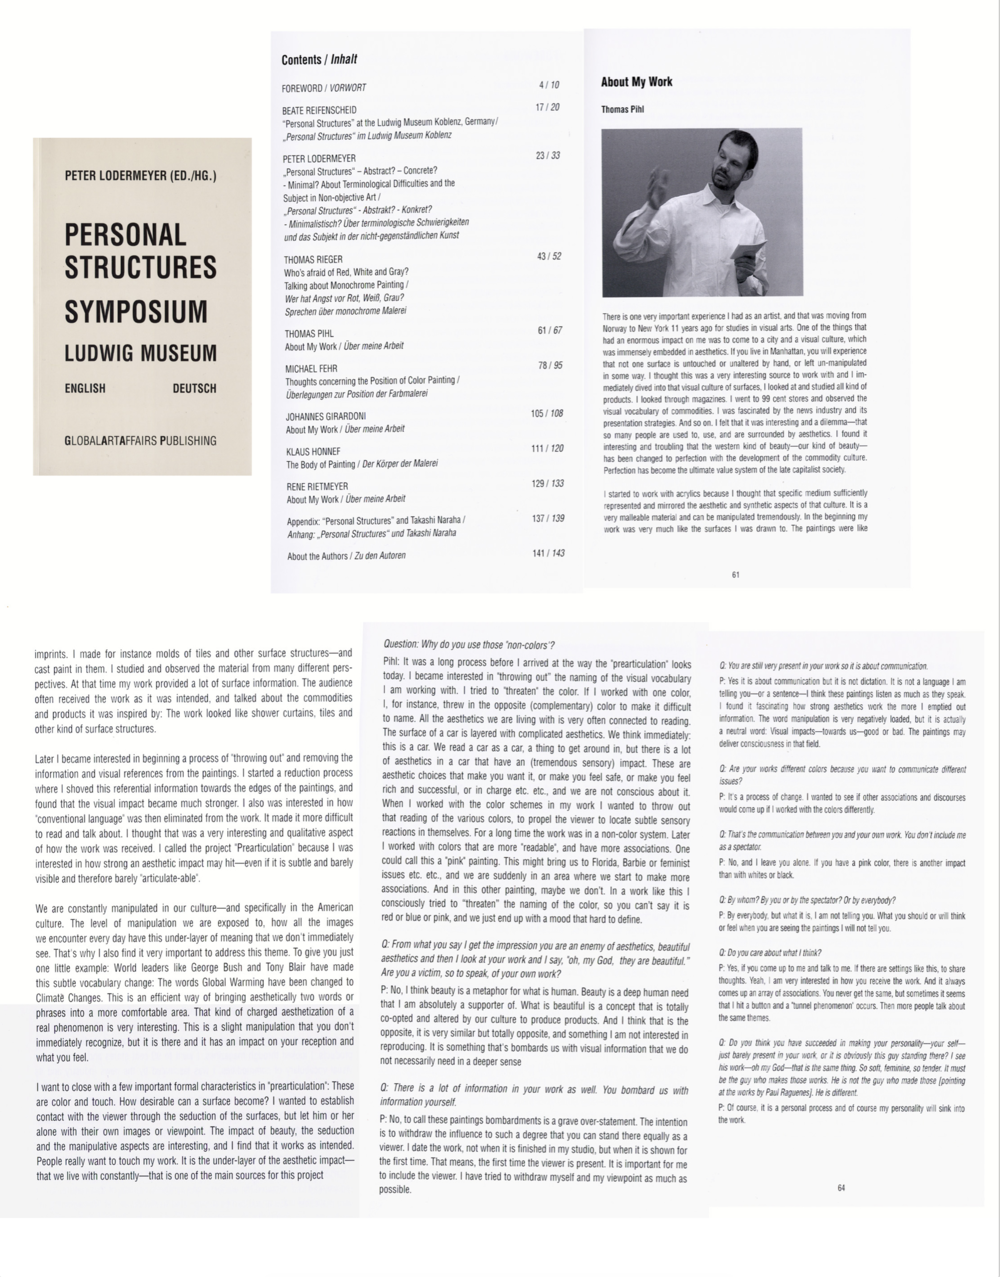 Personal Structures, Symposium Ludwig Museum  –click on image to read full article